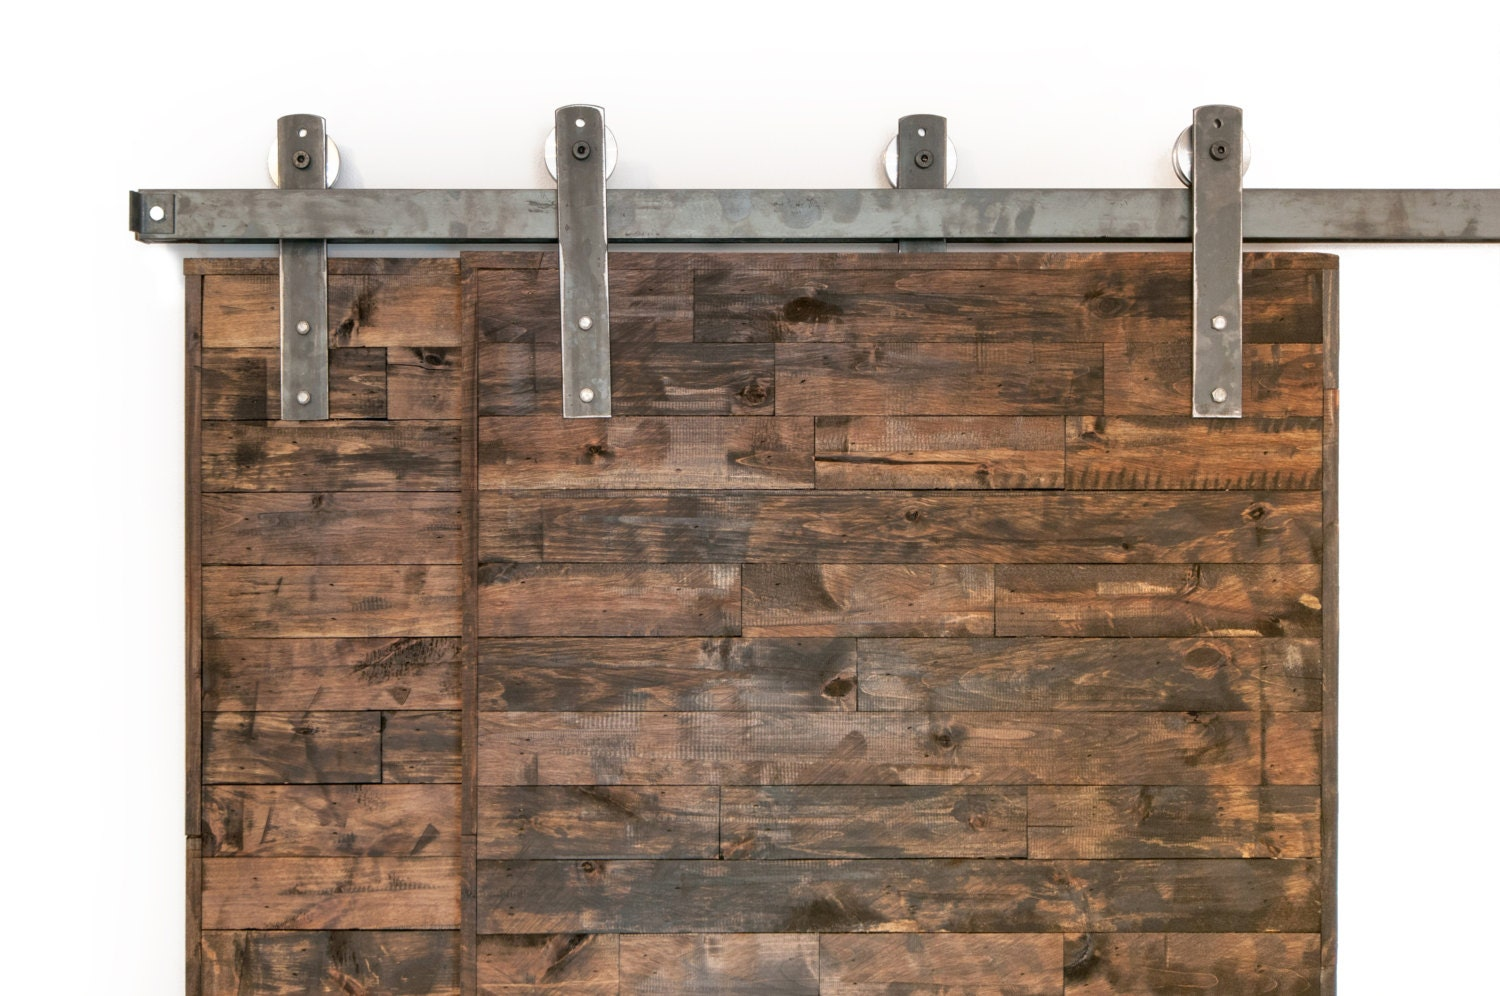 Bypass Industrial Classic Sliding Barn Door Closet Hardware Etsy